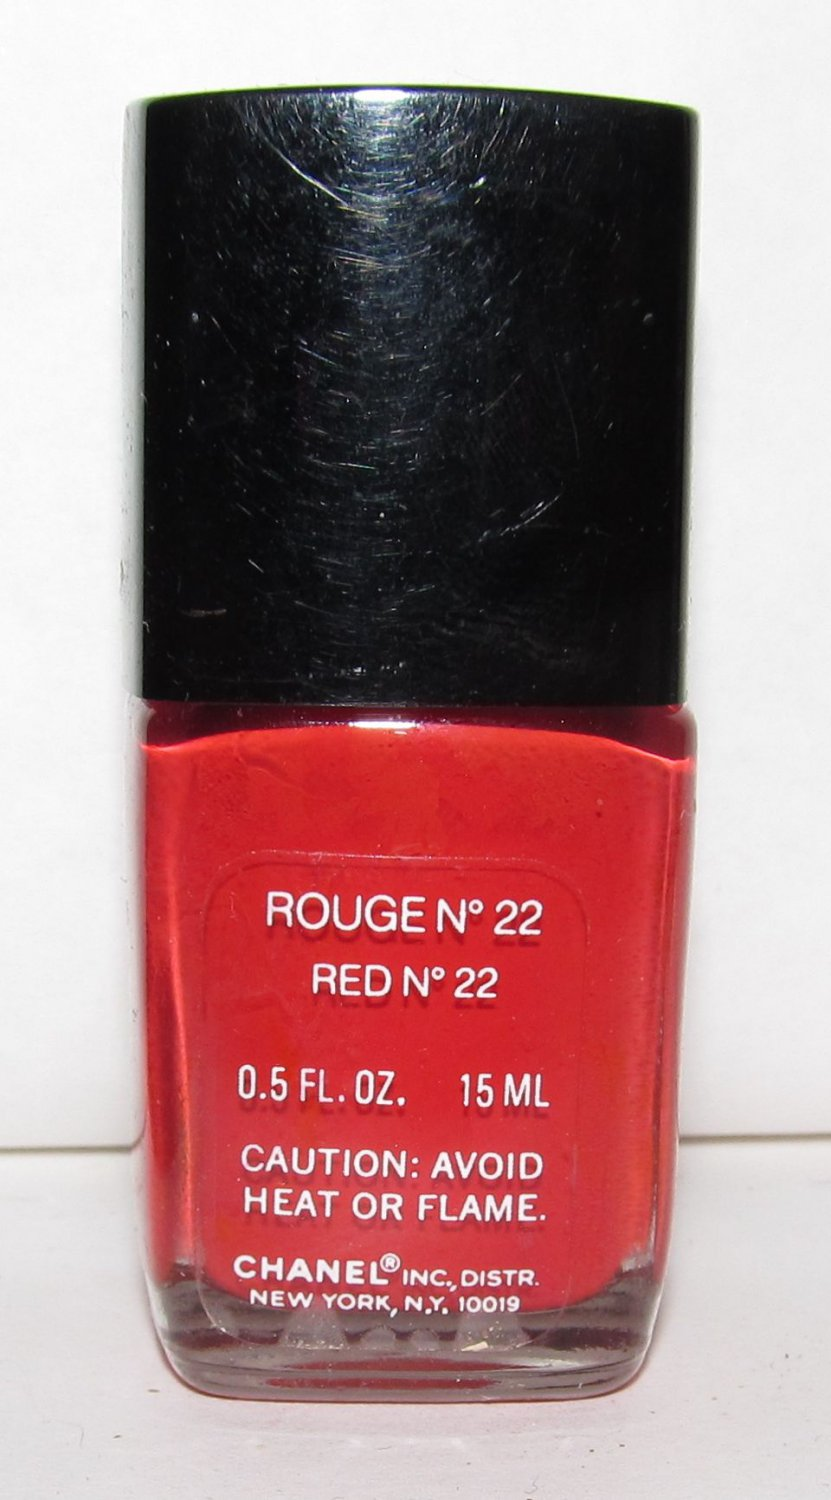 CHANEL Nail Polish - Rouge N°  22 (Red N° 22)- VHTF - RARE